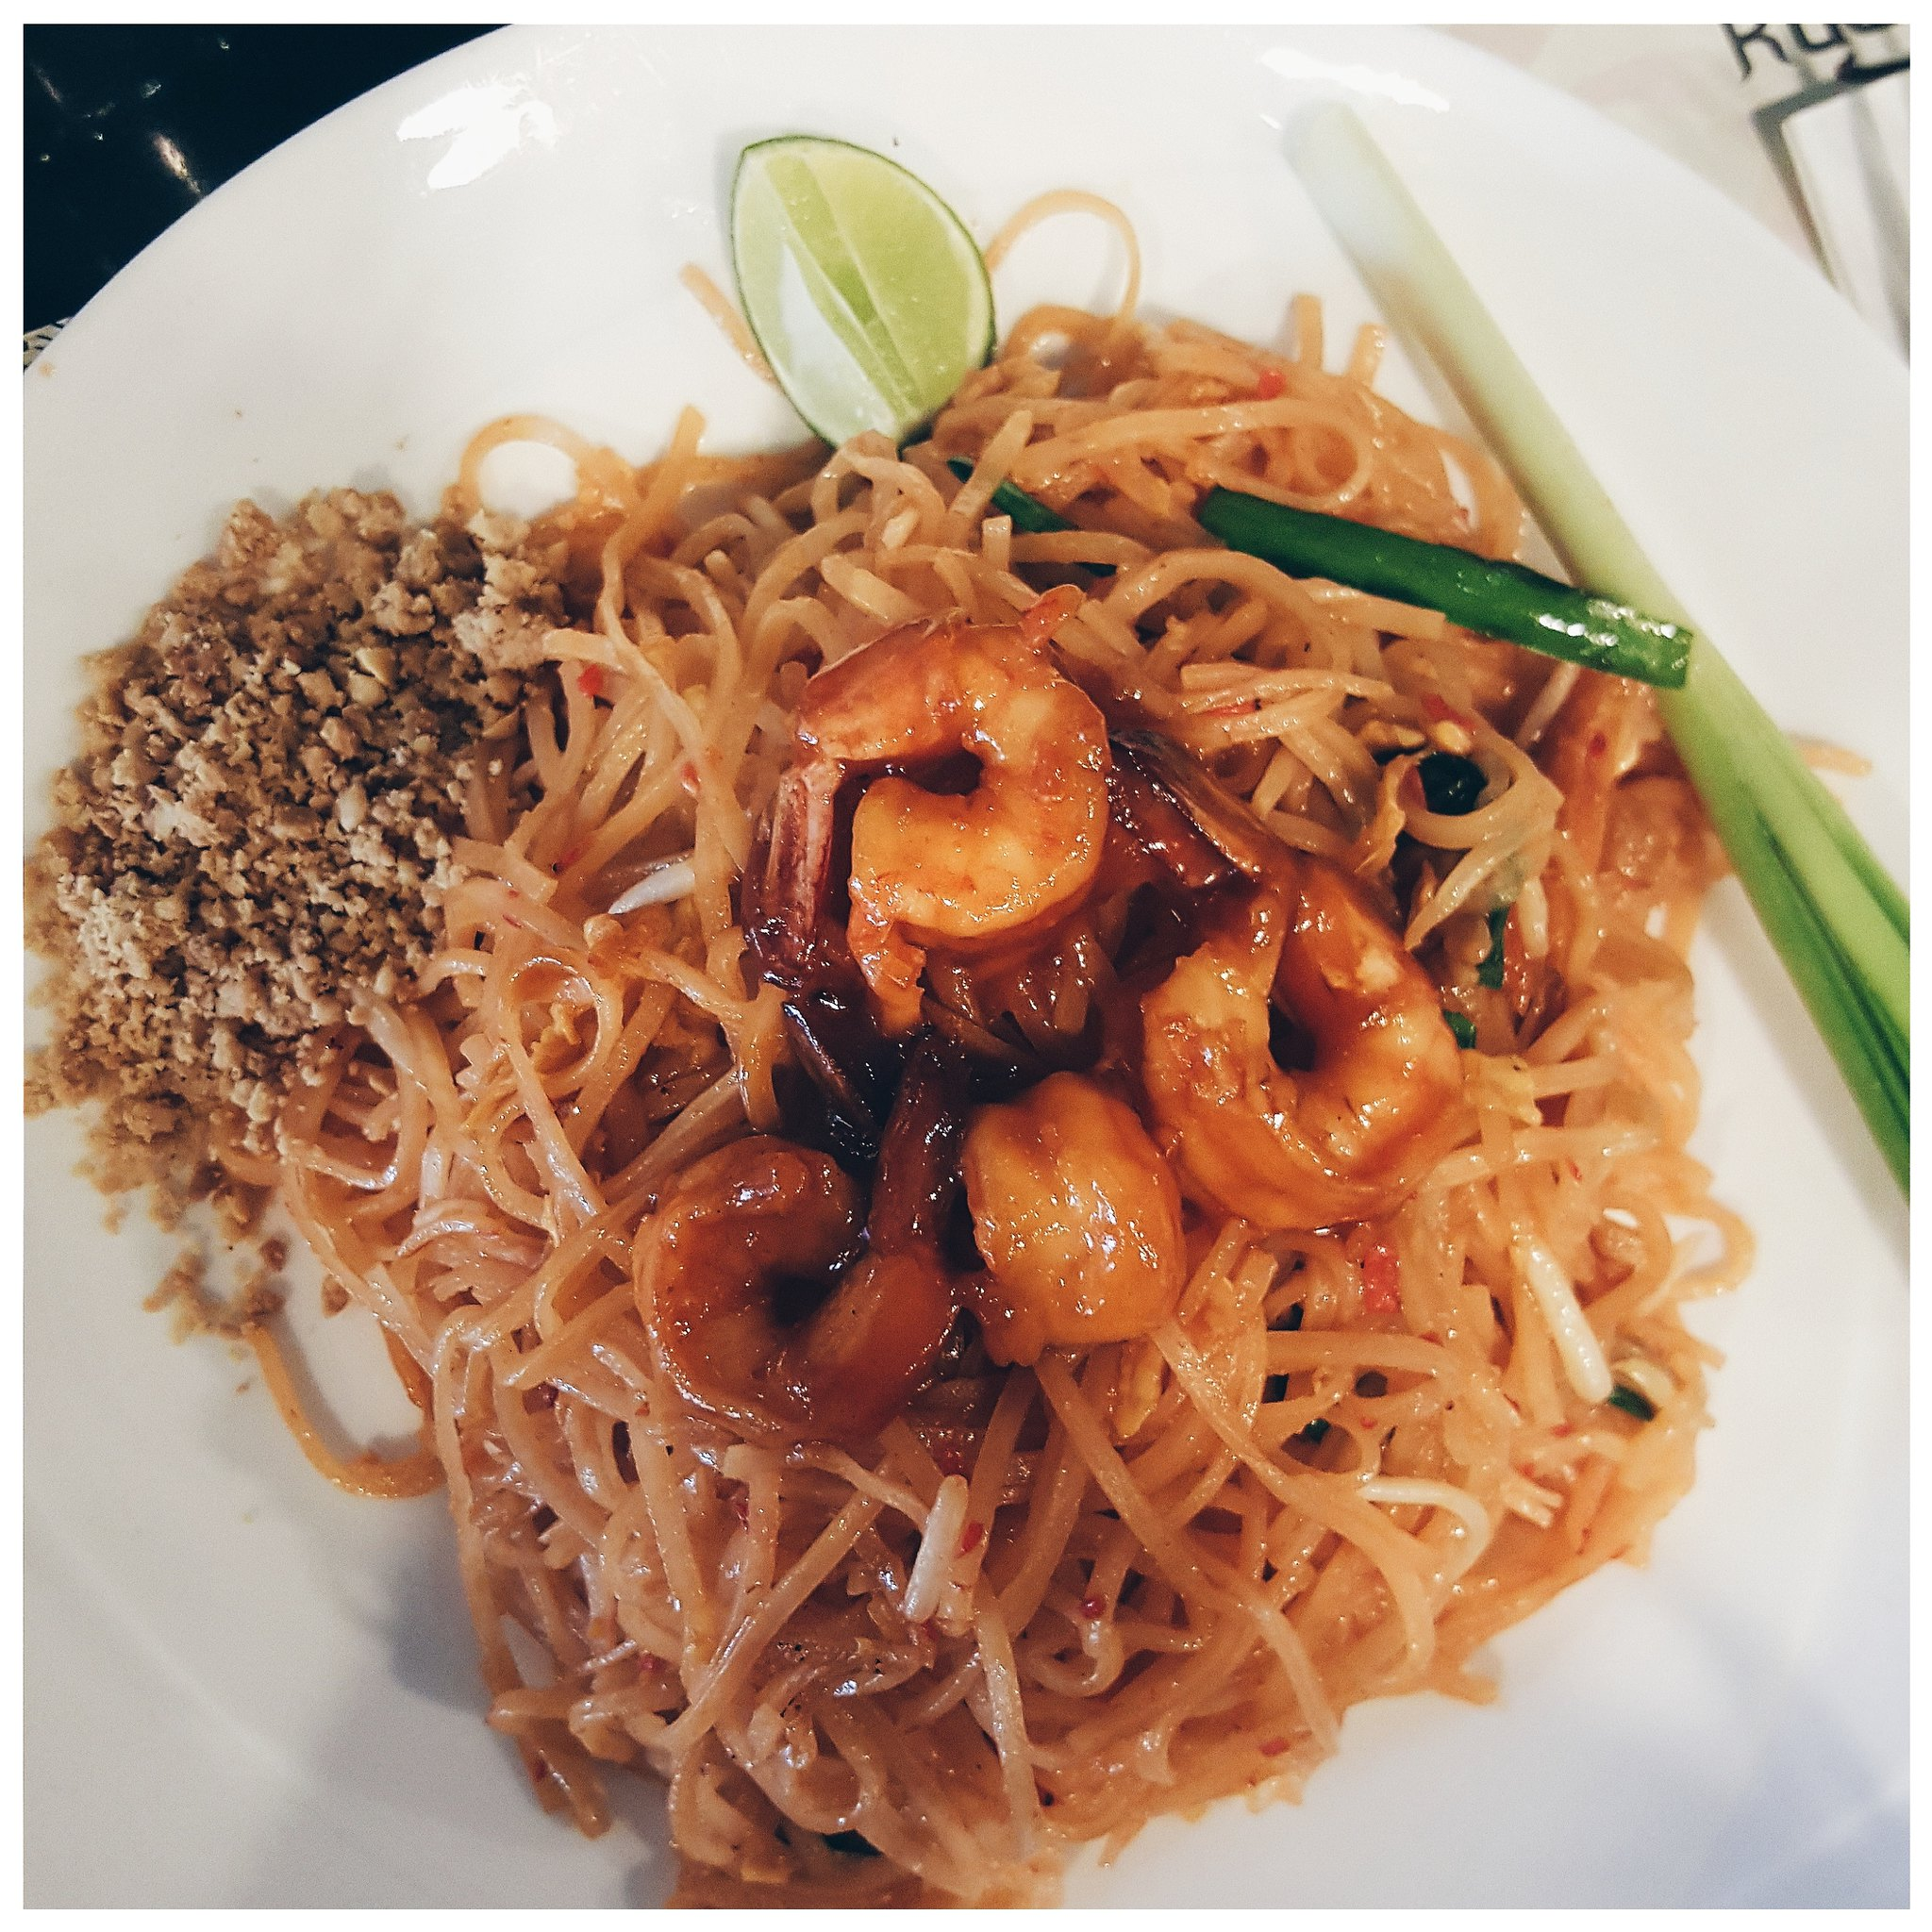 Daisybutter - Hong Kong Lifestyle and Fashion Blog: pad Thai